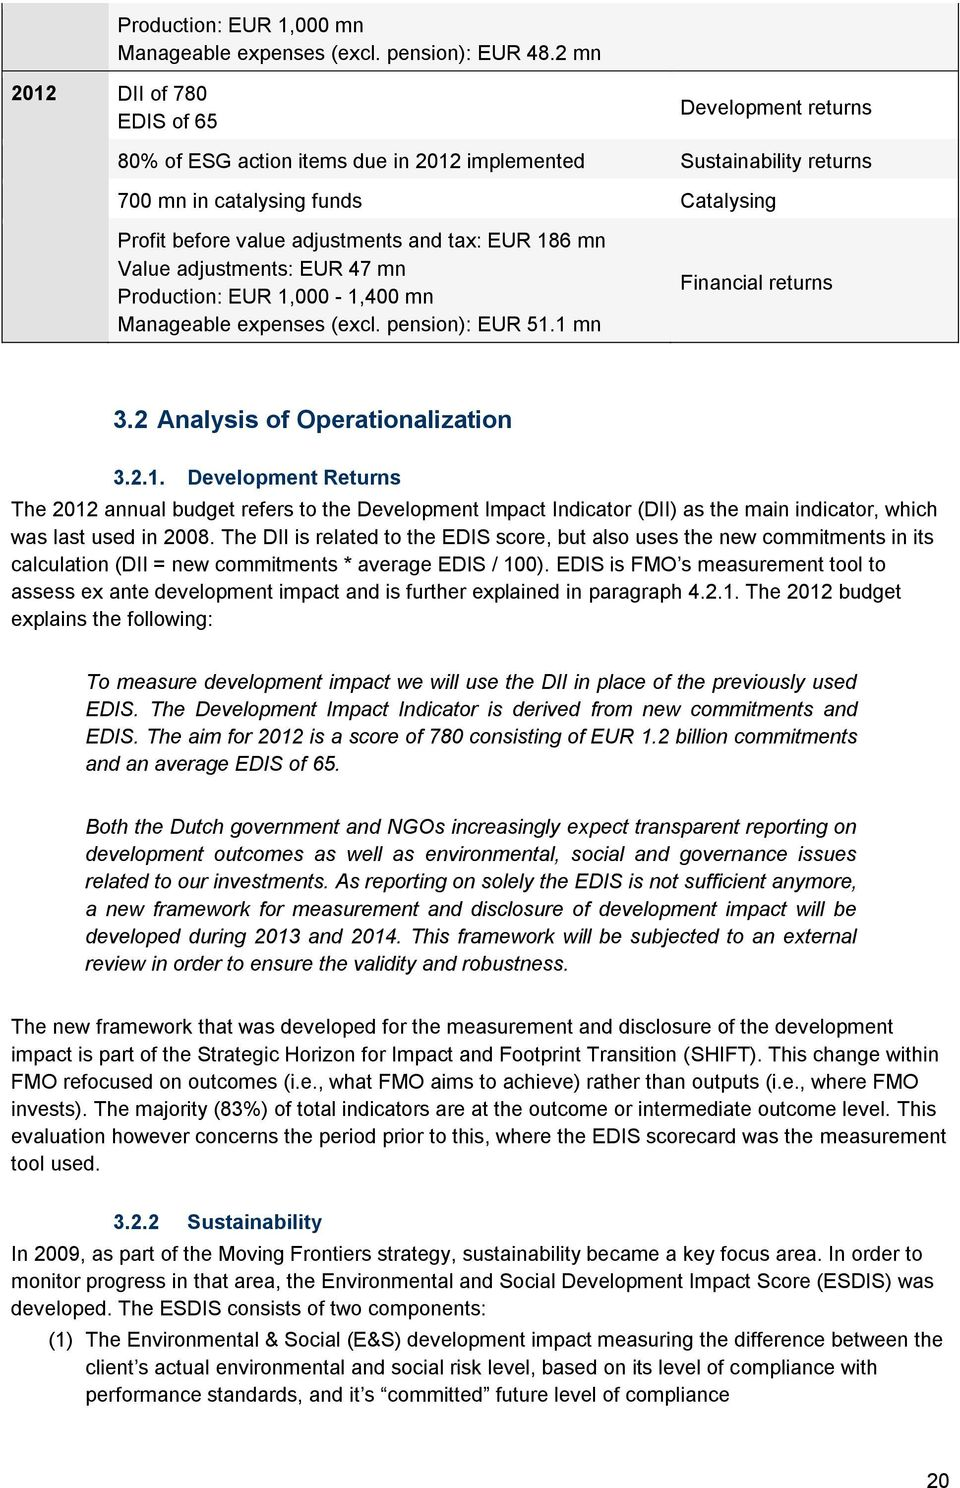 tax: EUR 186 mn Value adjustments: EUR 47 mn Production: EUR 1,000-1,400 mn Manageable expenses (excl. pension): EUR 51.1 mn Financial returns 3.2 Analysis of Operationalization 3.2.1. Development Returns The 2012 annual budget refers to the Development Impact Indicator (DII) as the main indicator, which was last used in 2008.